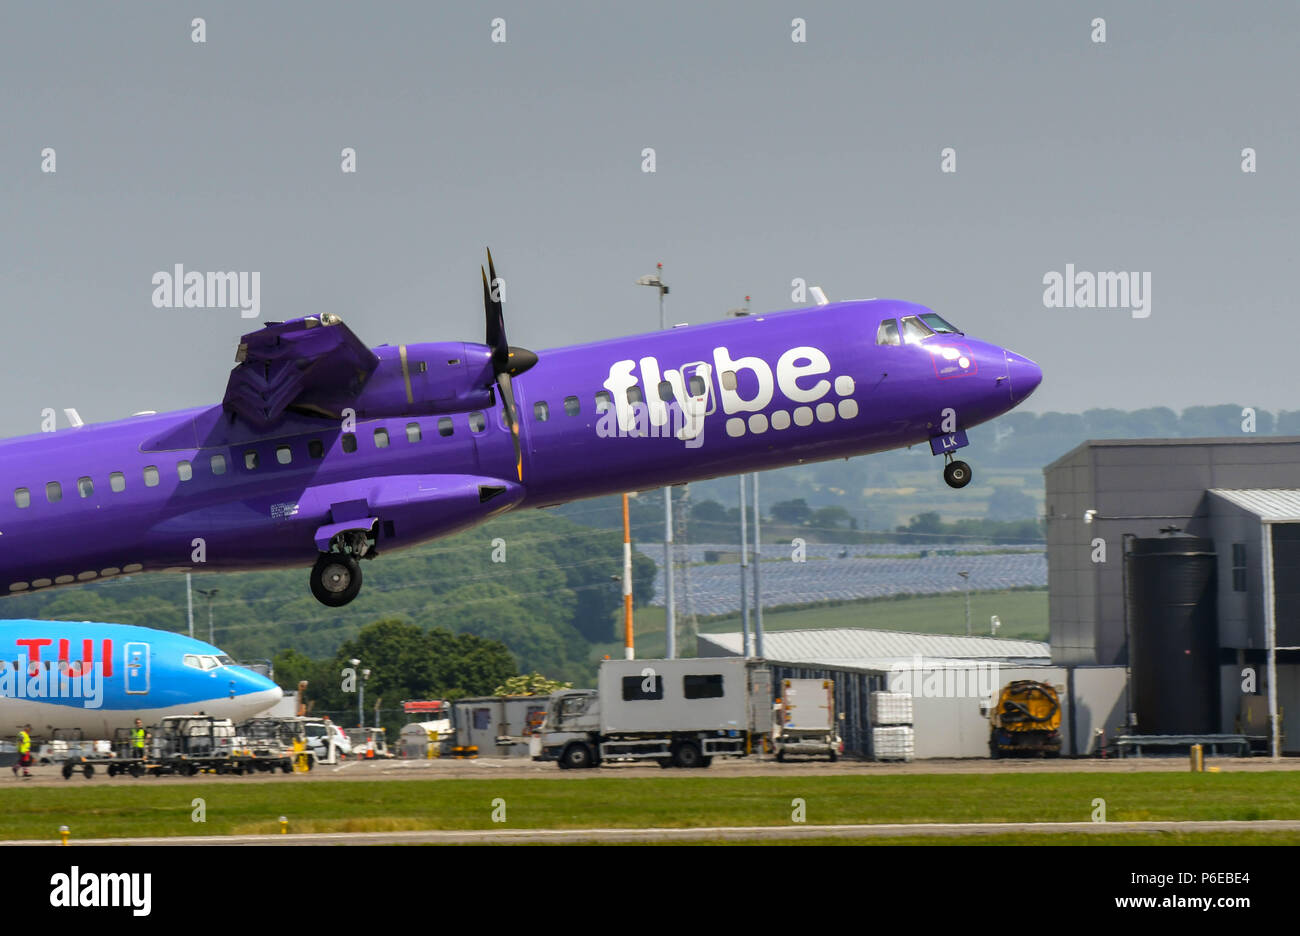 ATR 72 turboprop short haul airliner operated by Flybe taking off at Cardiff Wales Airport - Stock Image